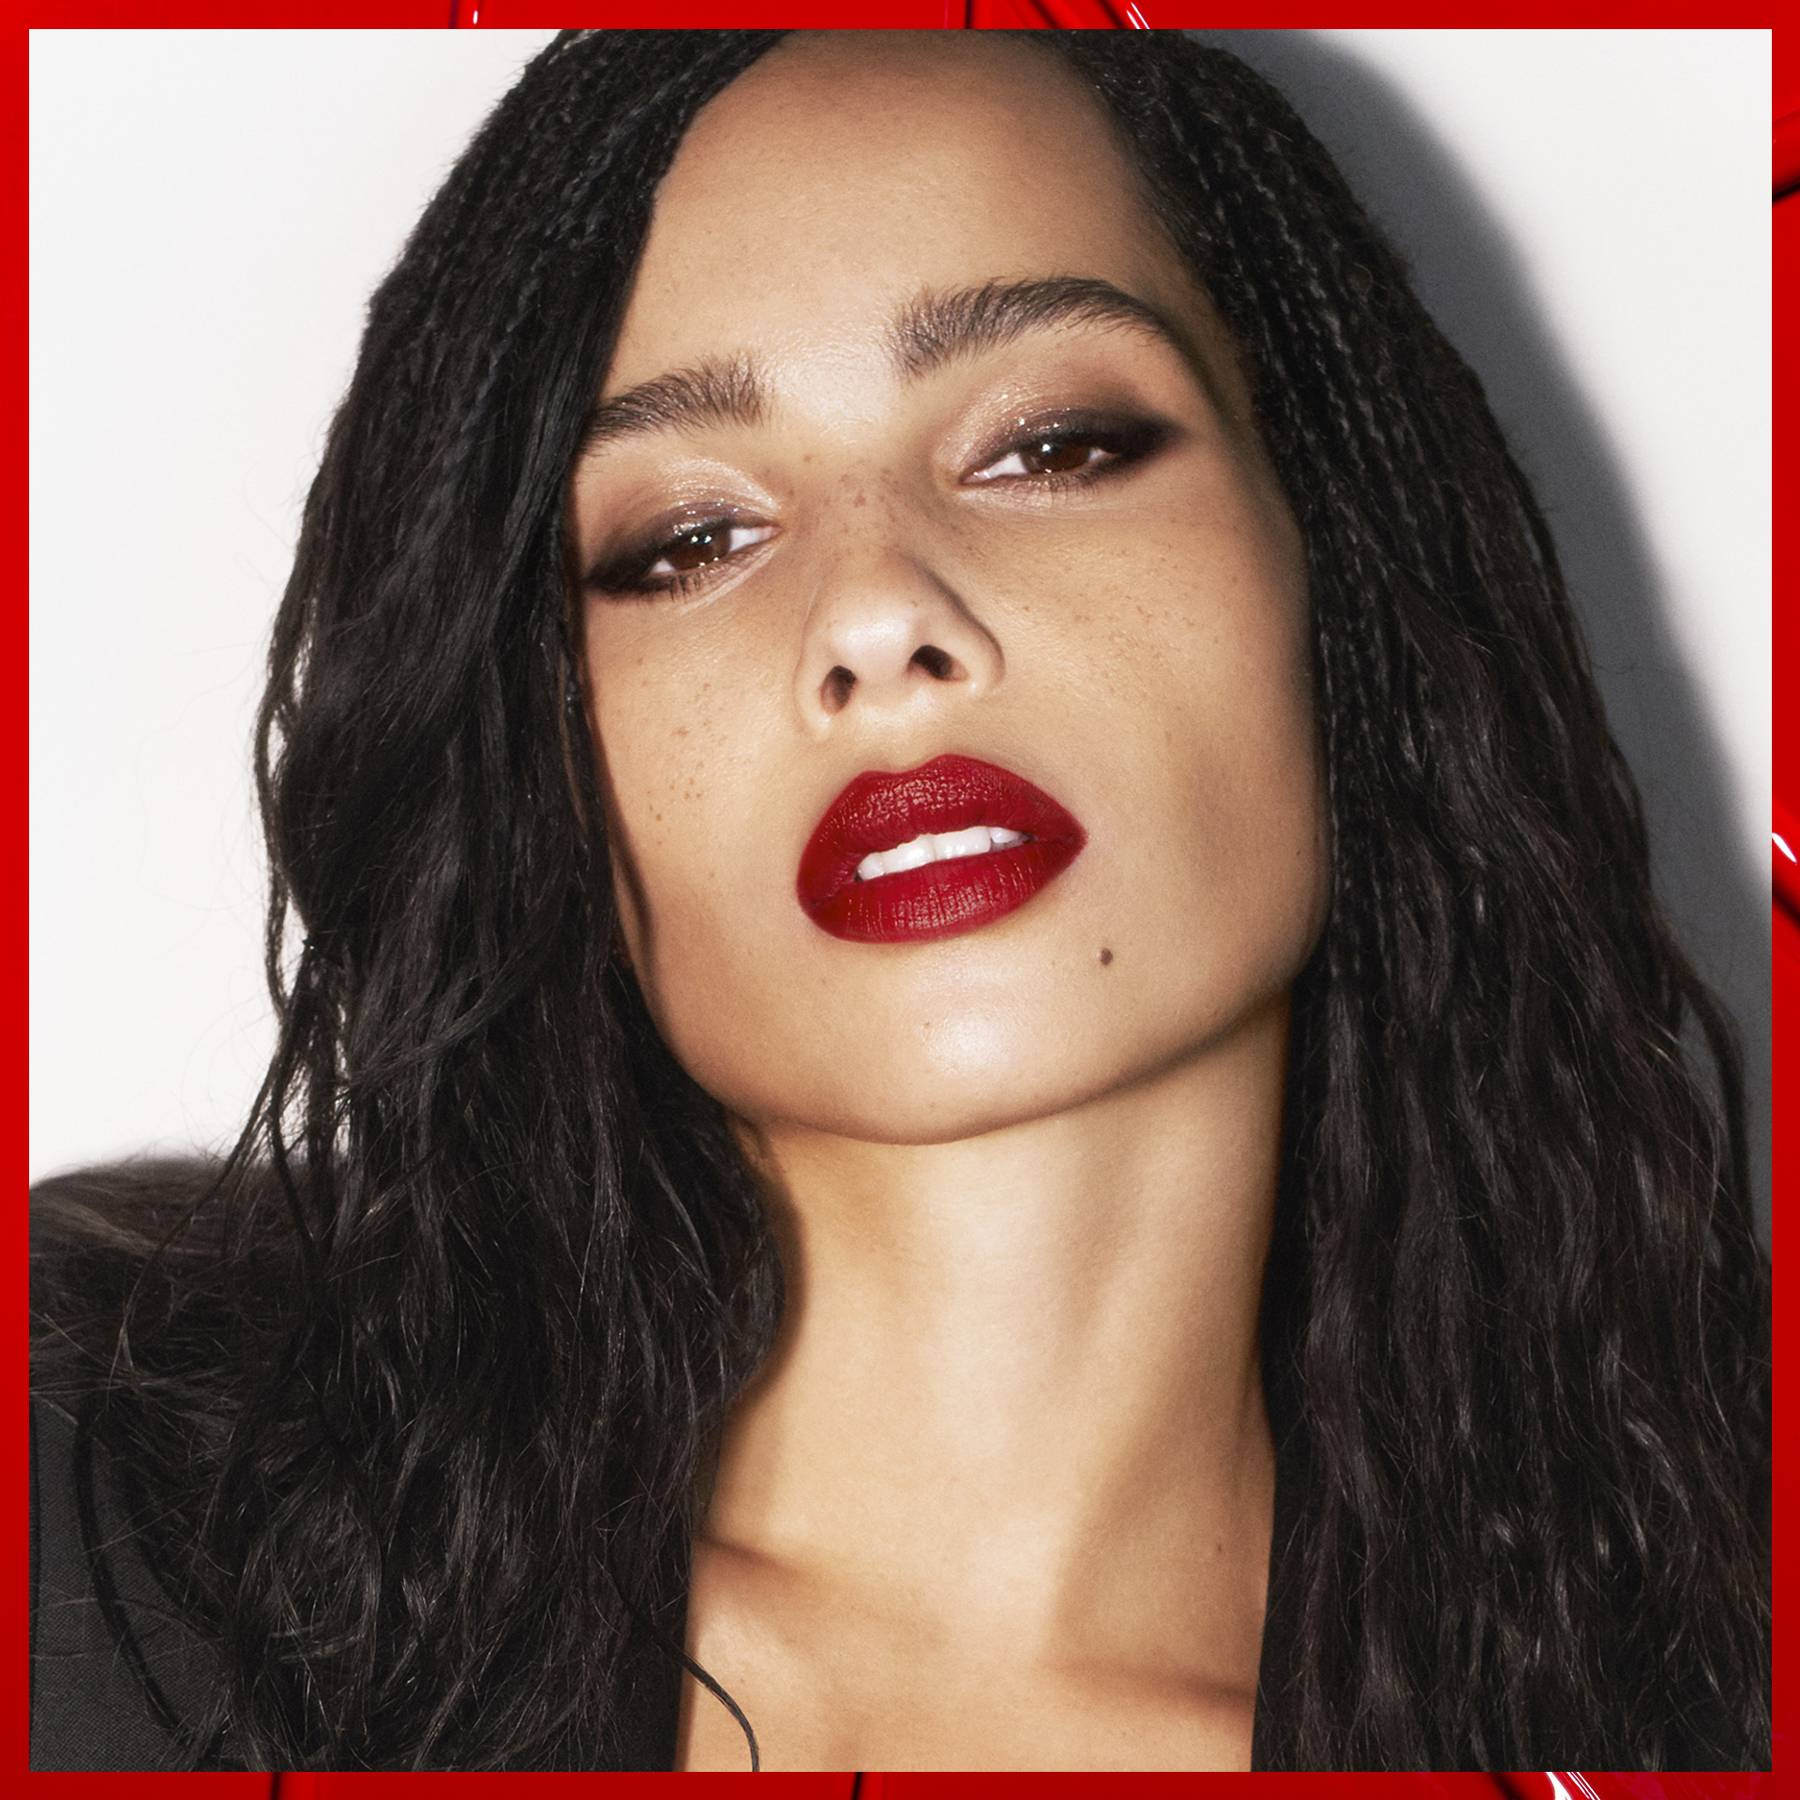 Zoë Kravitz has created a lipstick collection with YSL and it is the coolest range ever